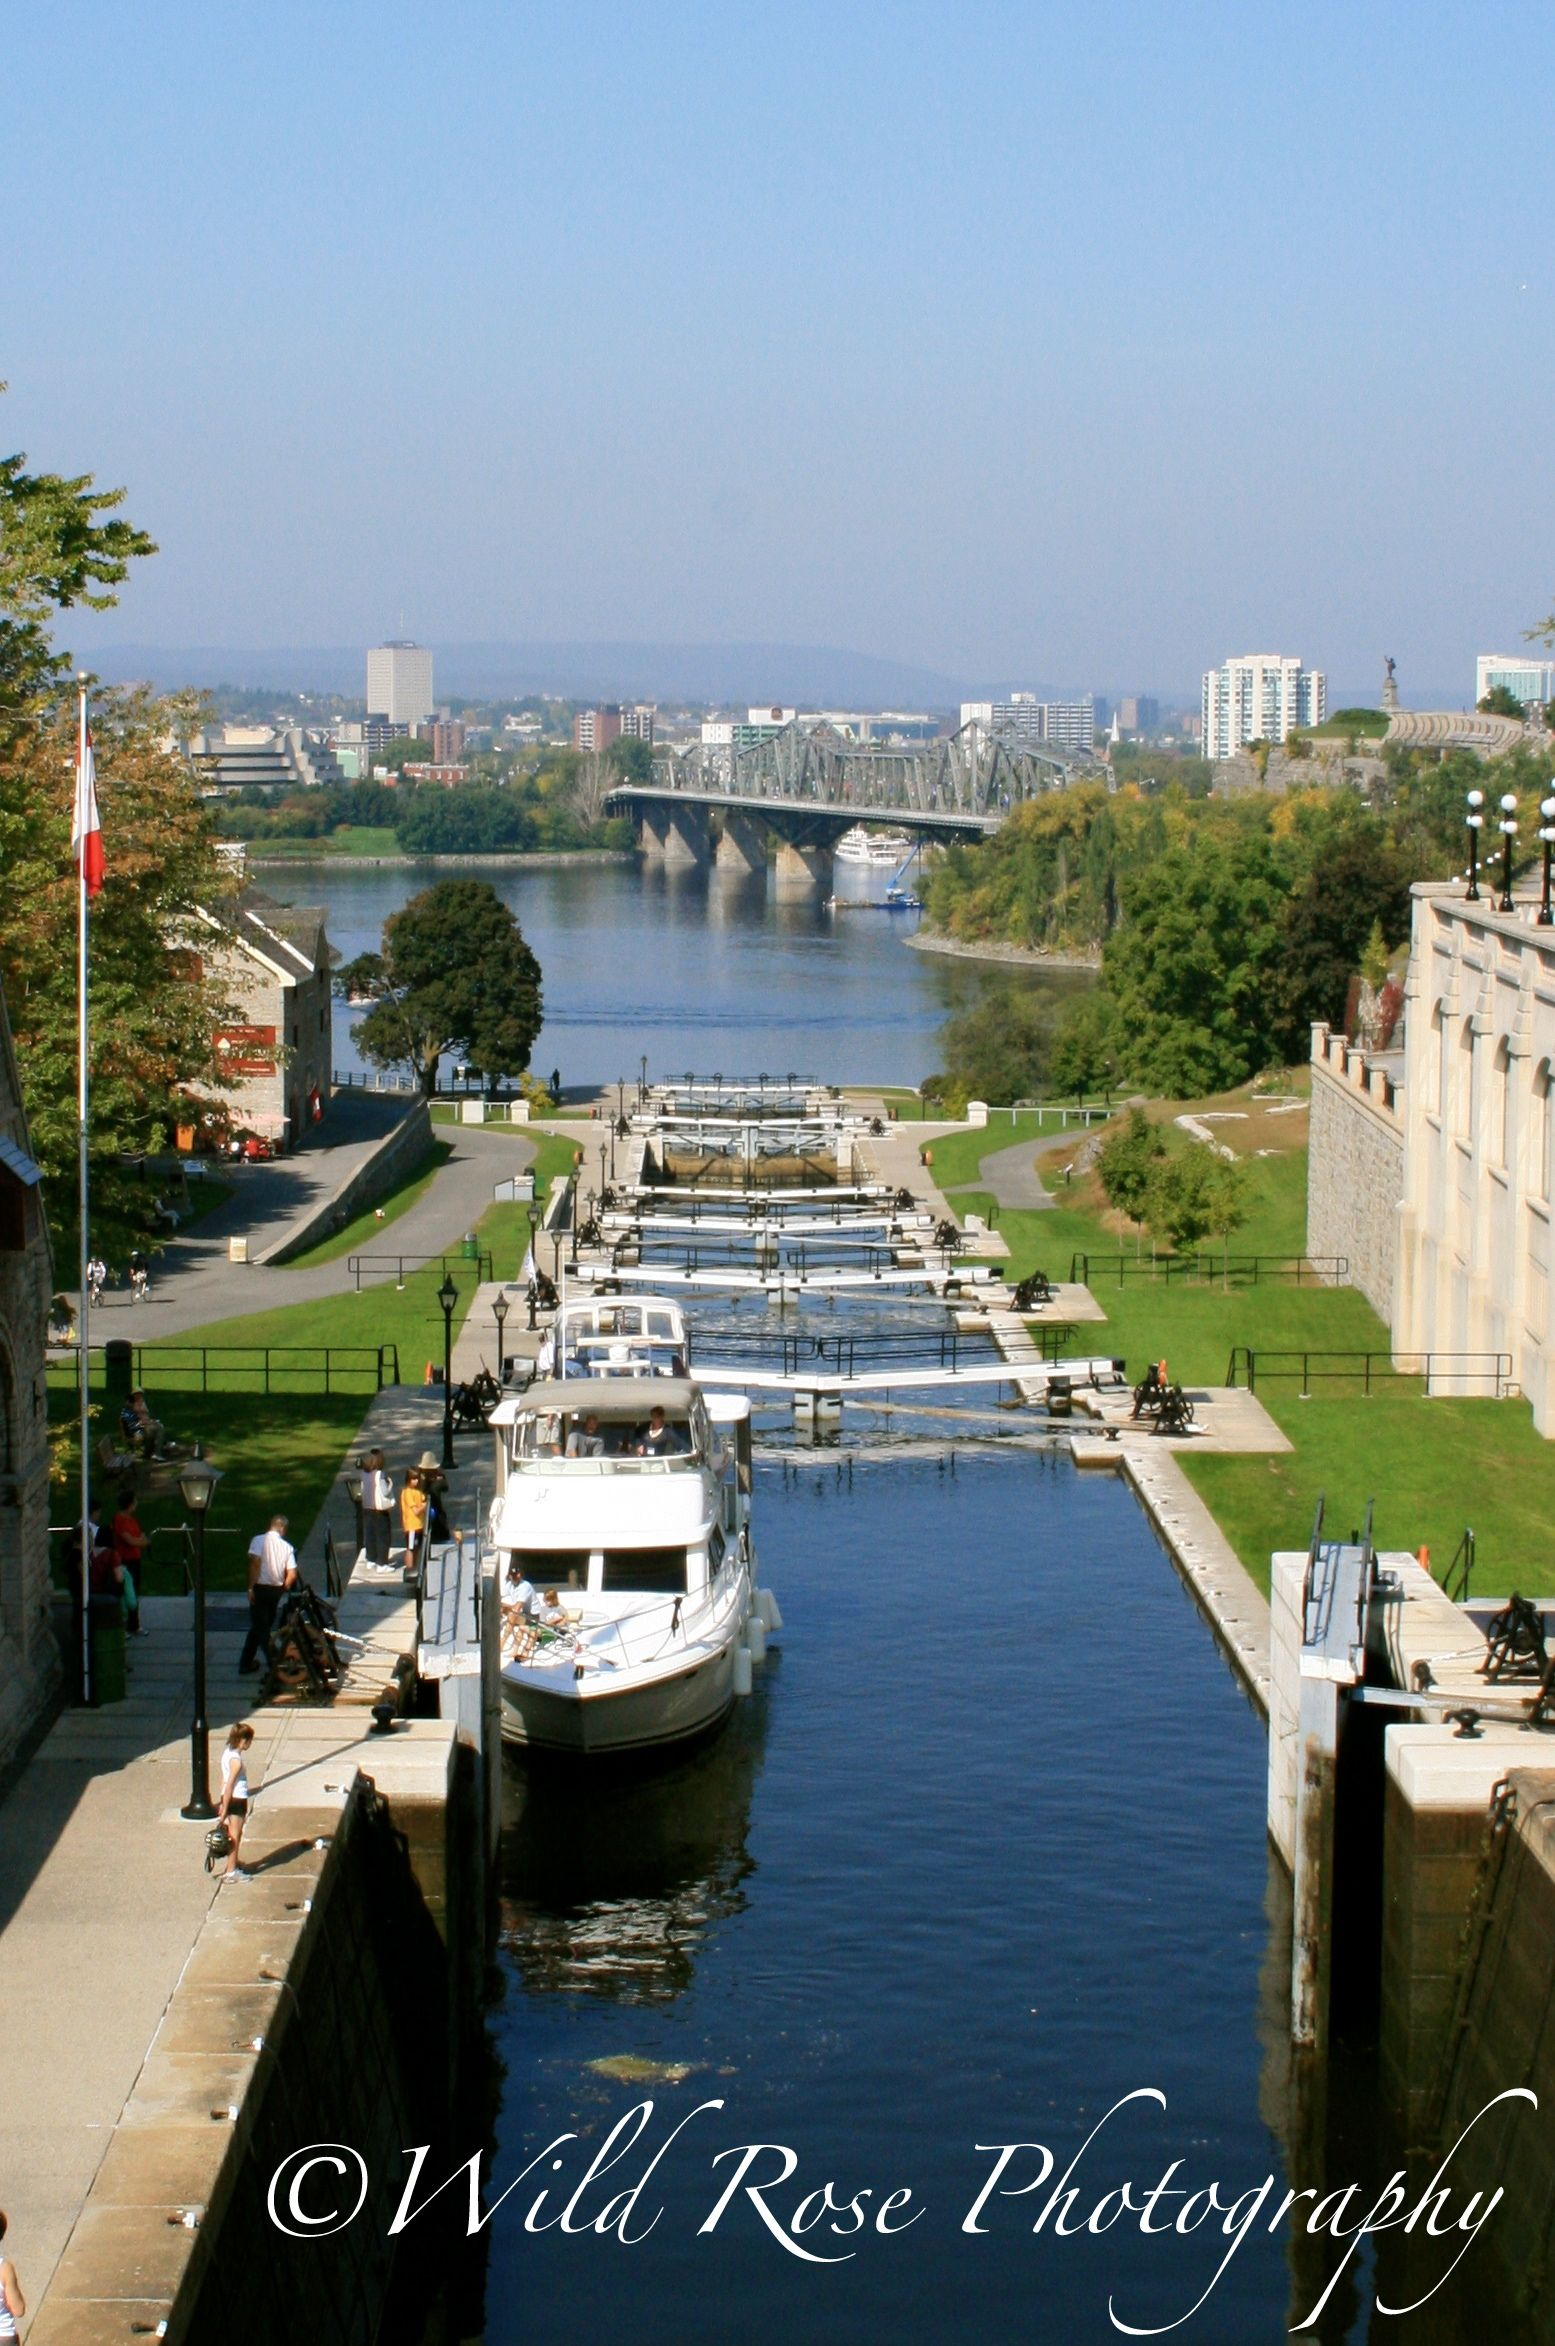 the rideau canal waterway which links the lakes and. Black Bedroom Furniture Sets. Home Design Ideas